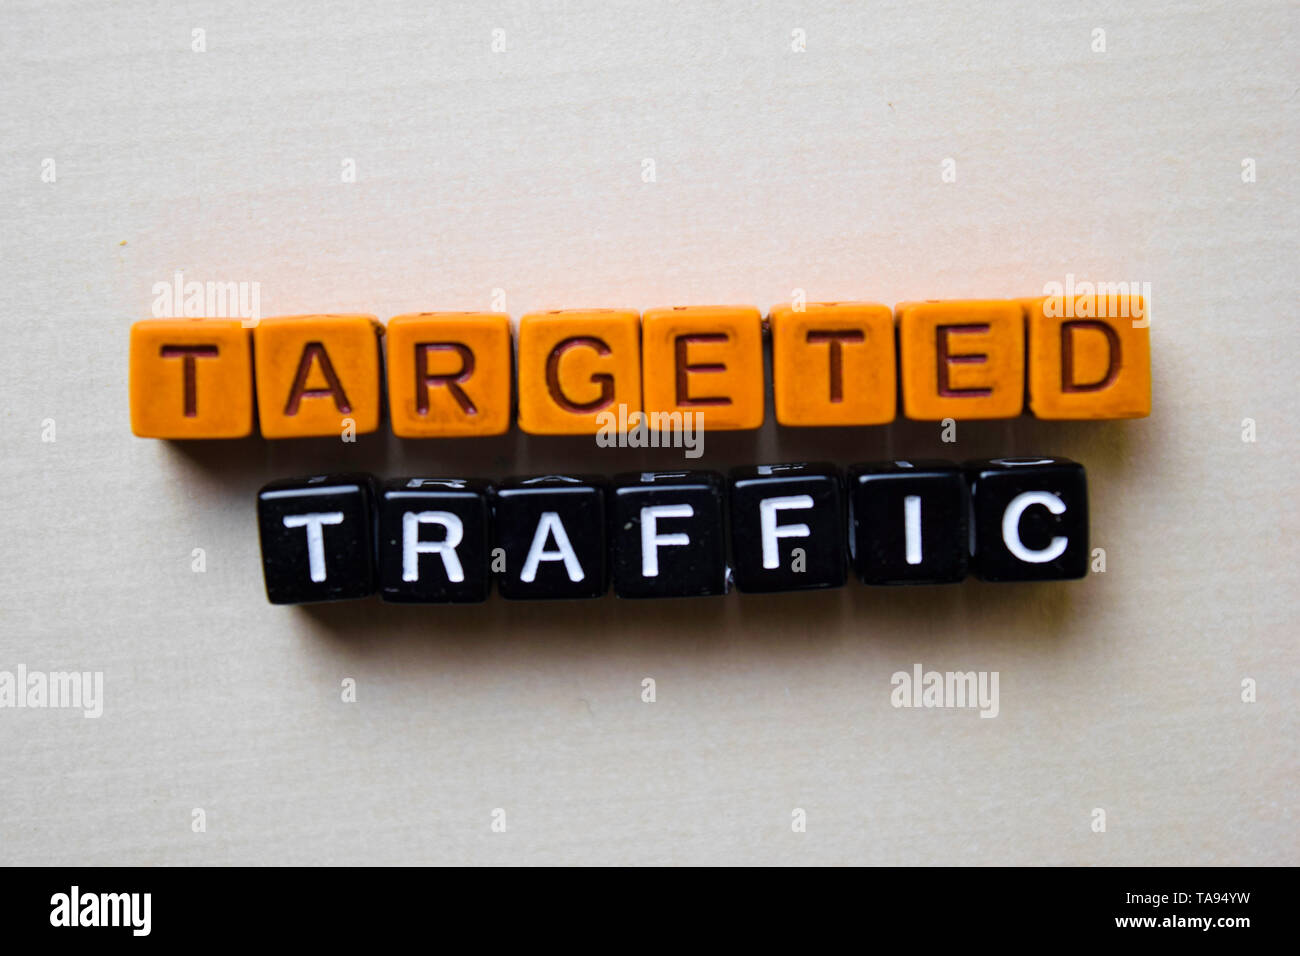 Targeted Traffic on wooden blocks. Business and inspiration concept - Stock Image